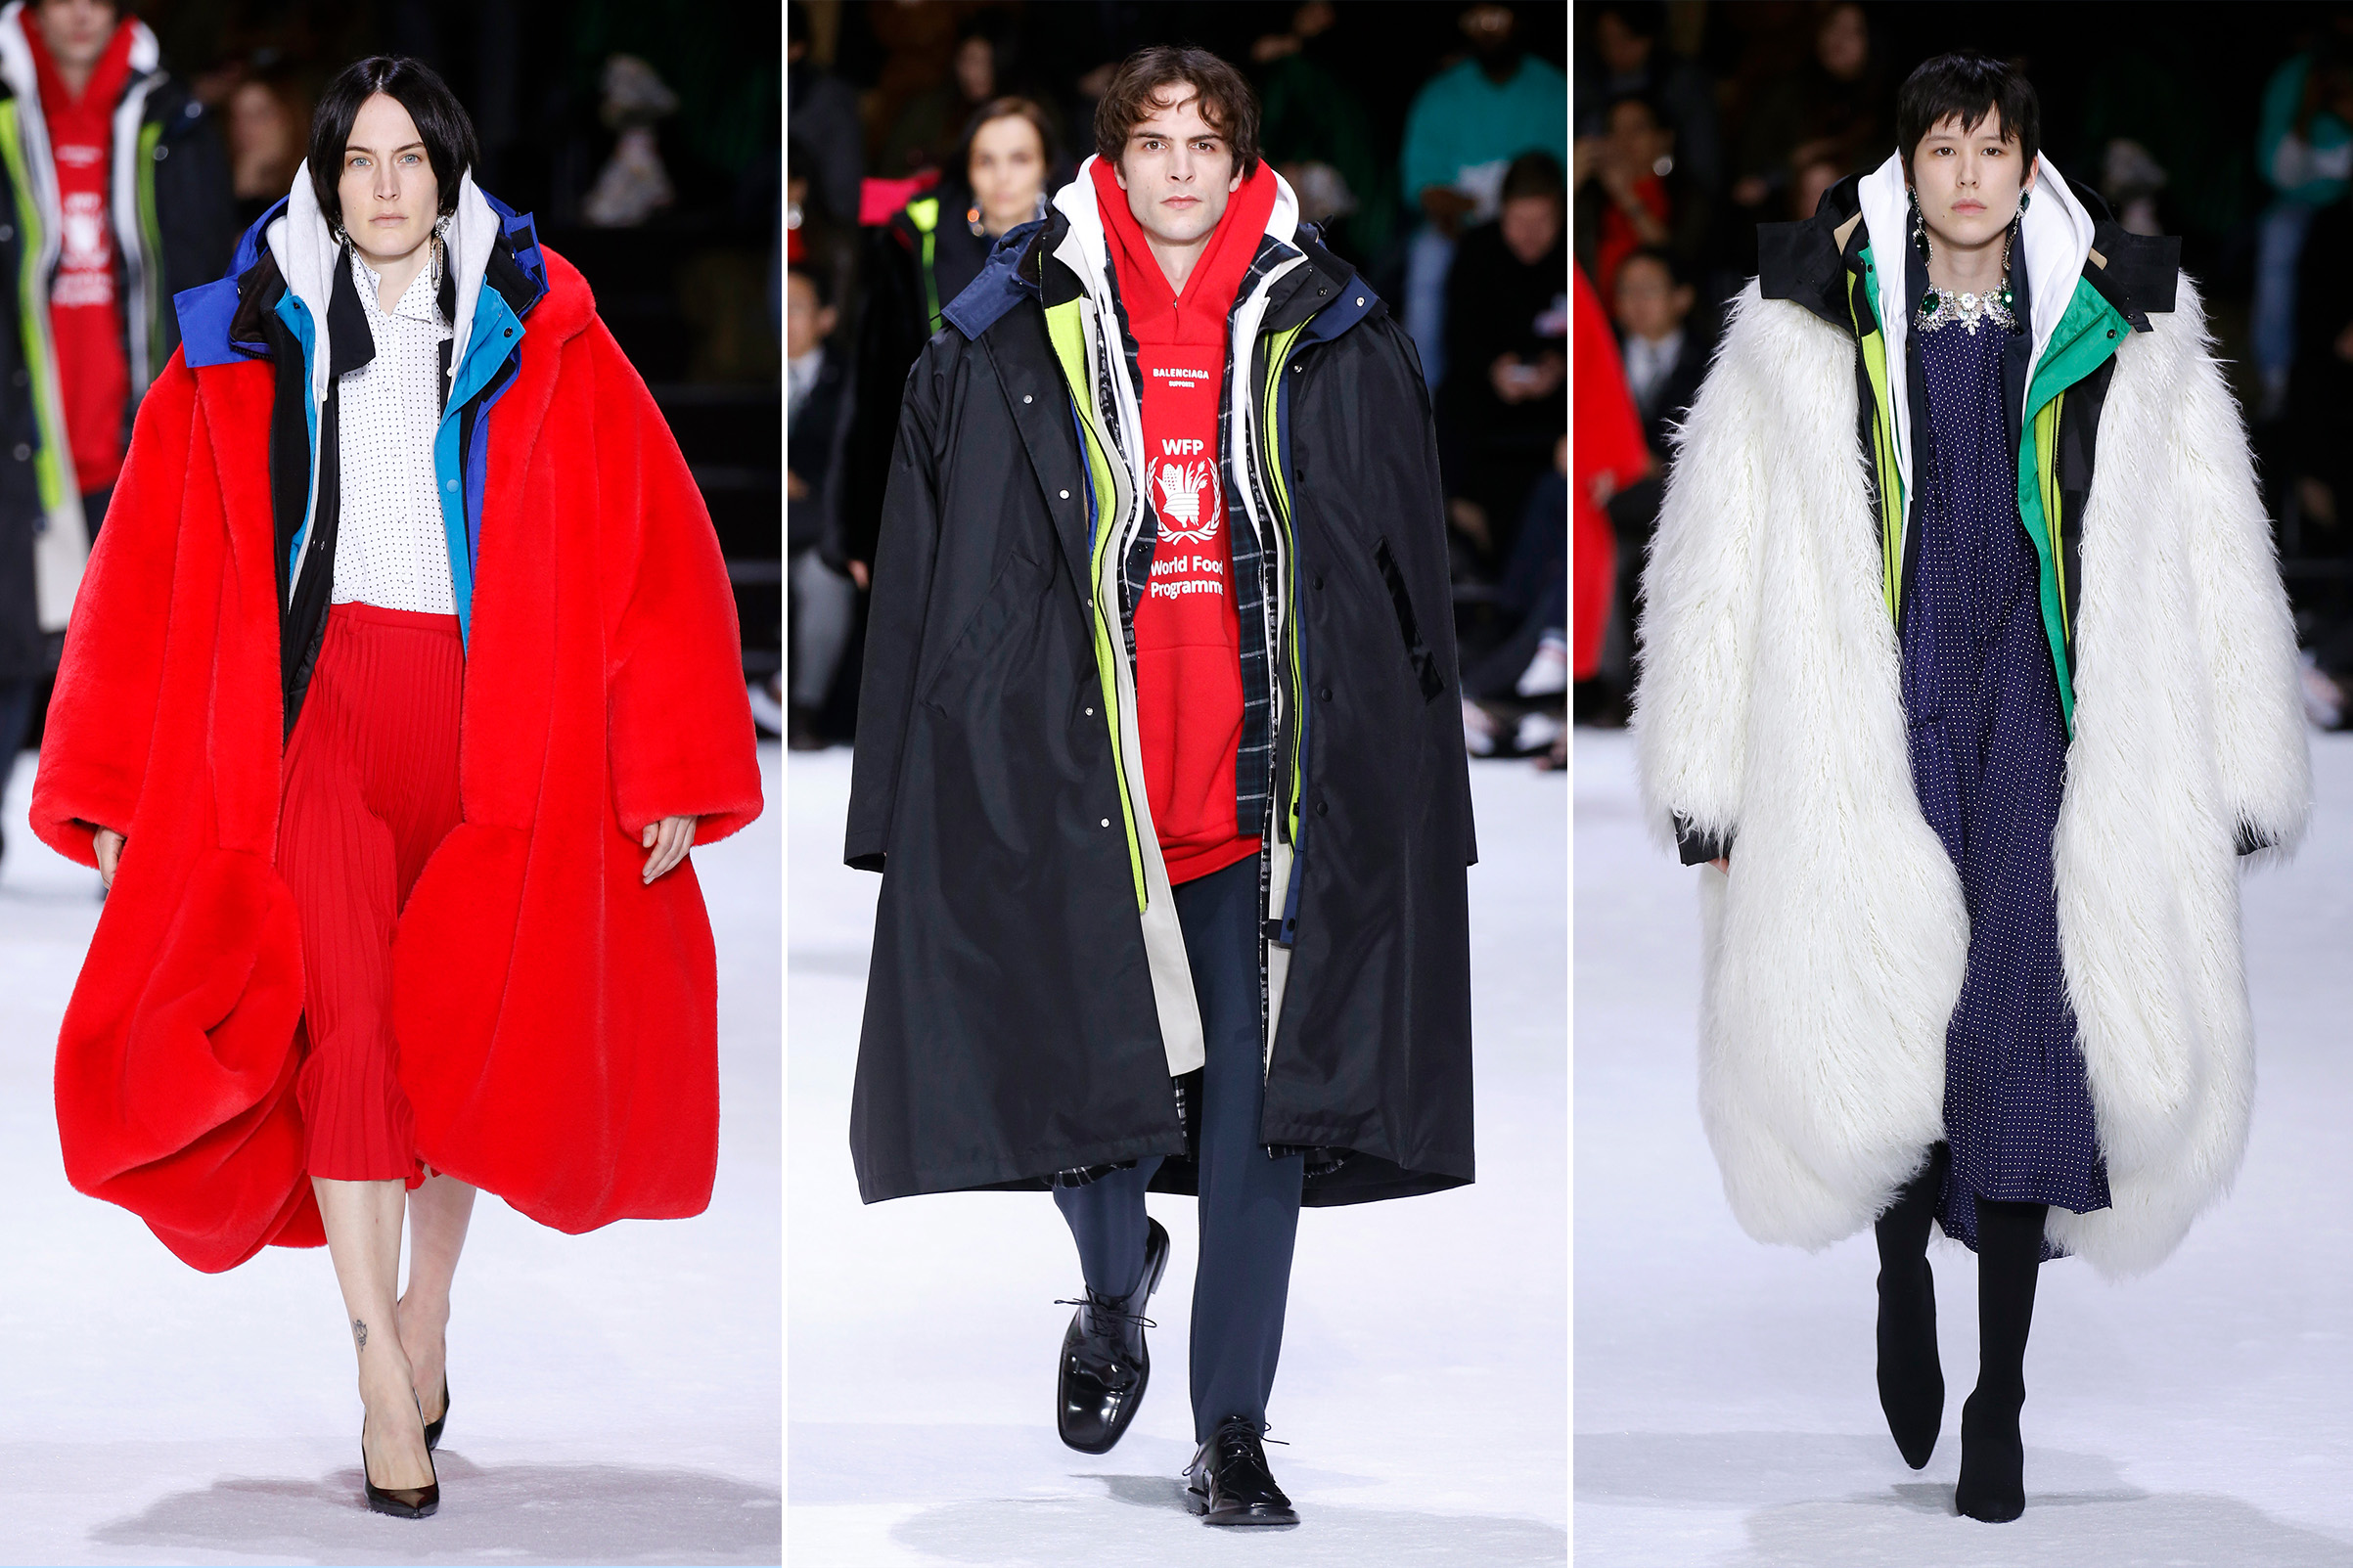 soddisfazione Interesse Meridionale  Big Jacket Fashion Trend Inspires Memes: Joey, Balenciaga | Time